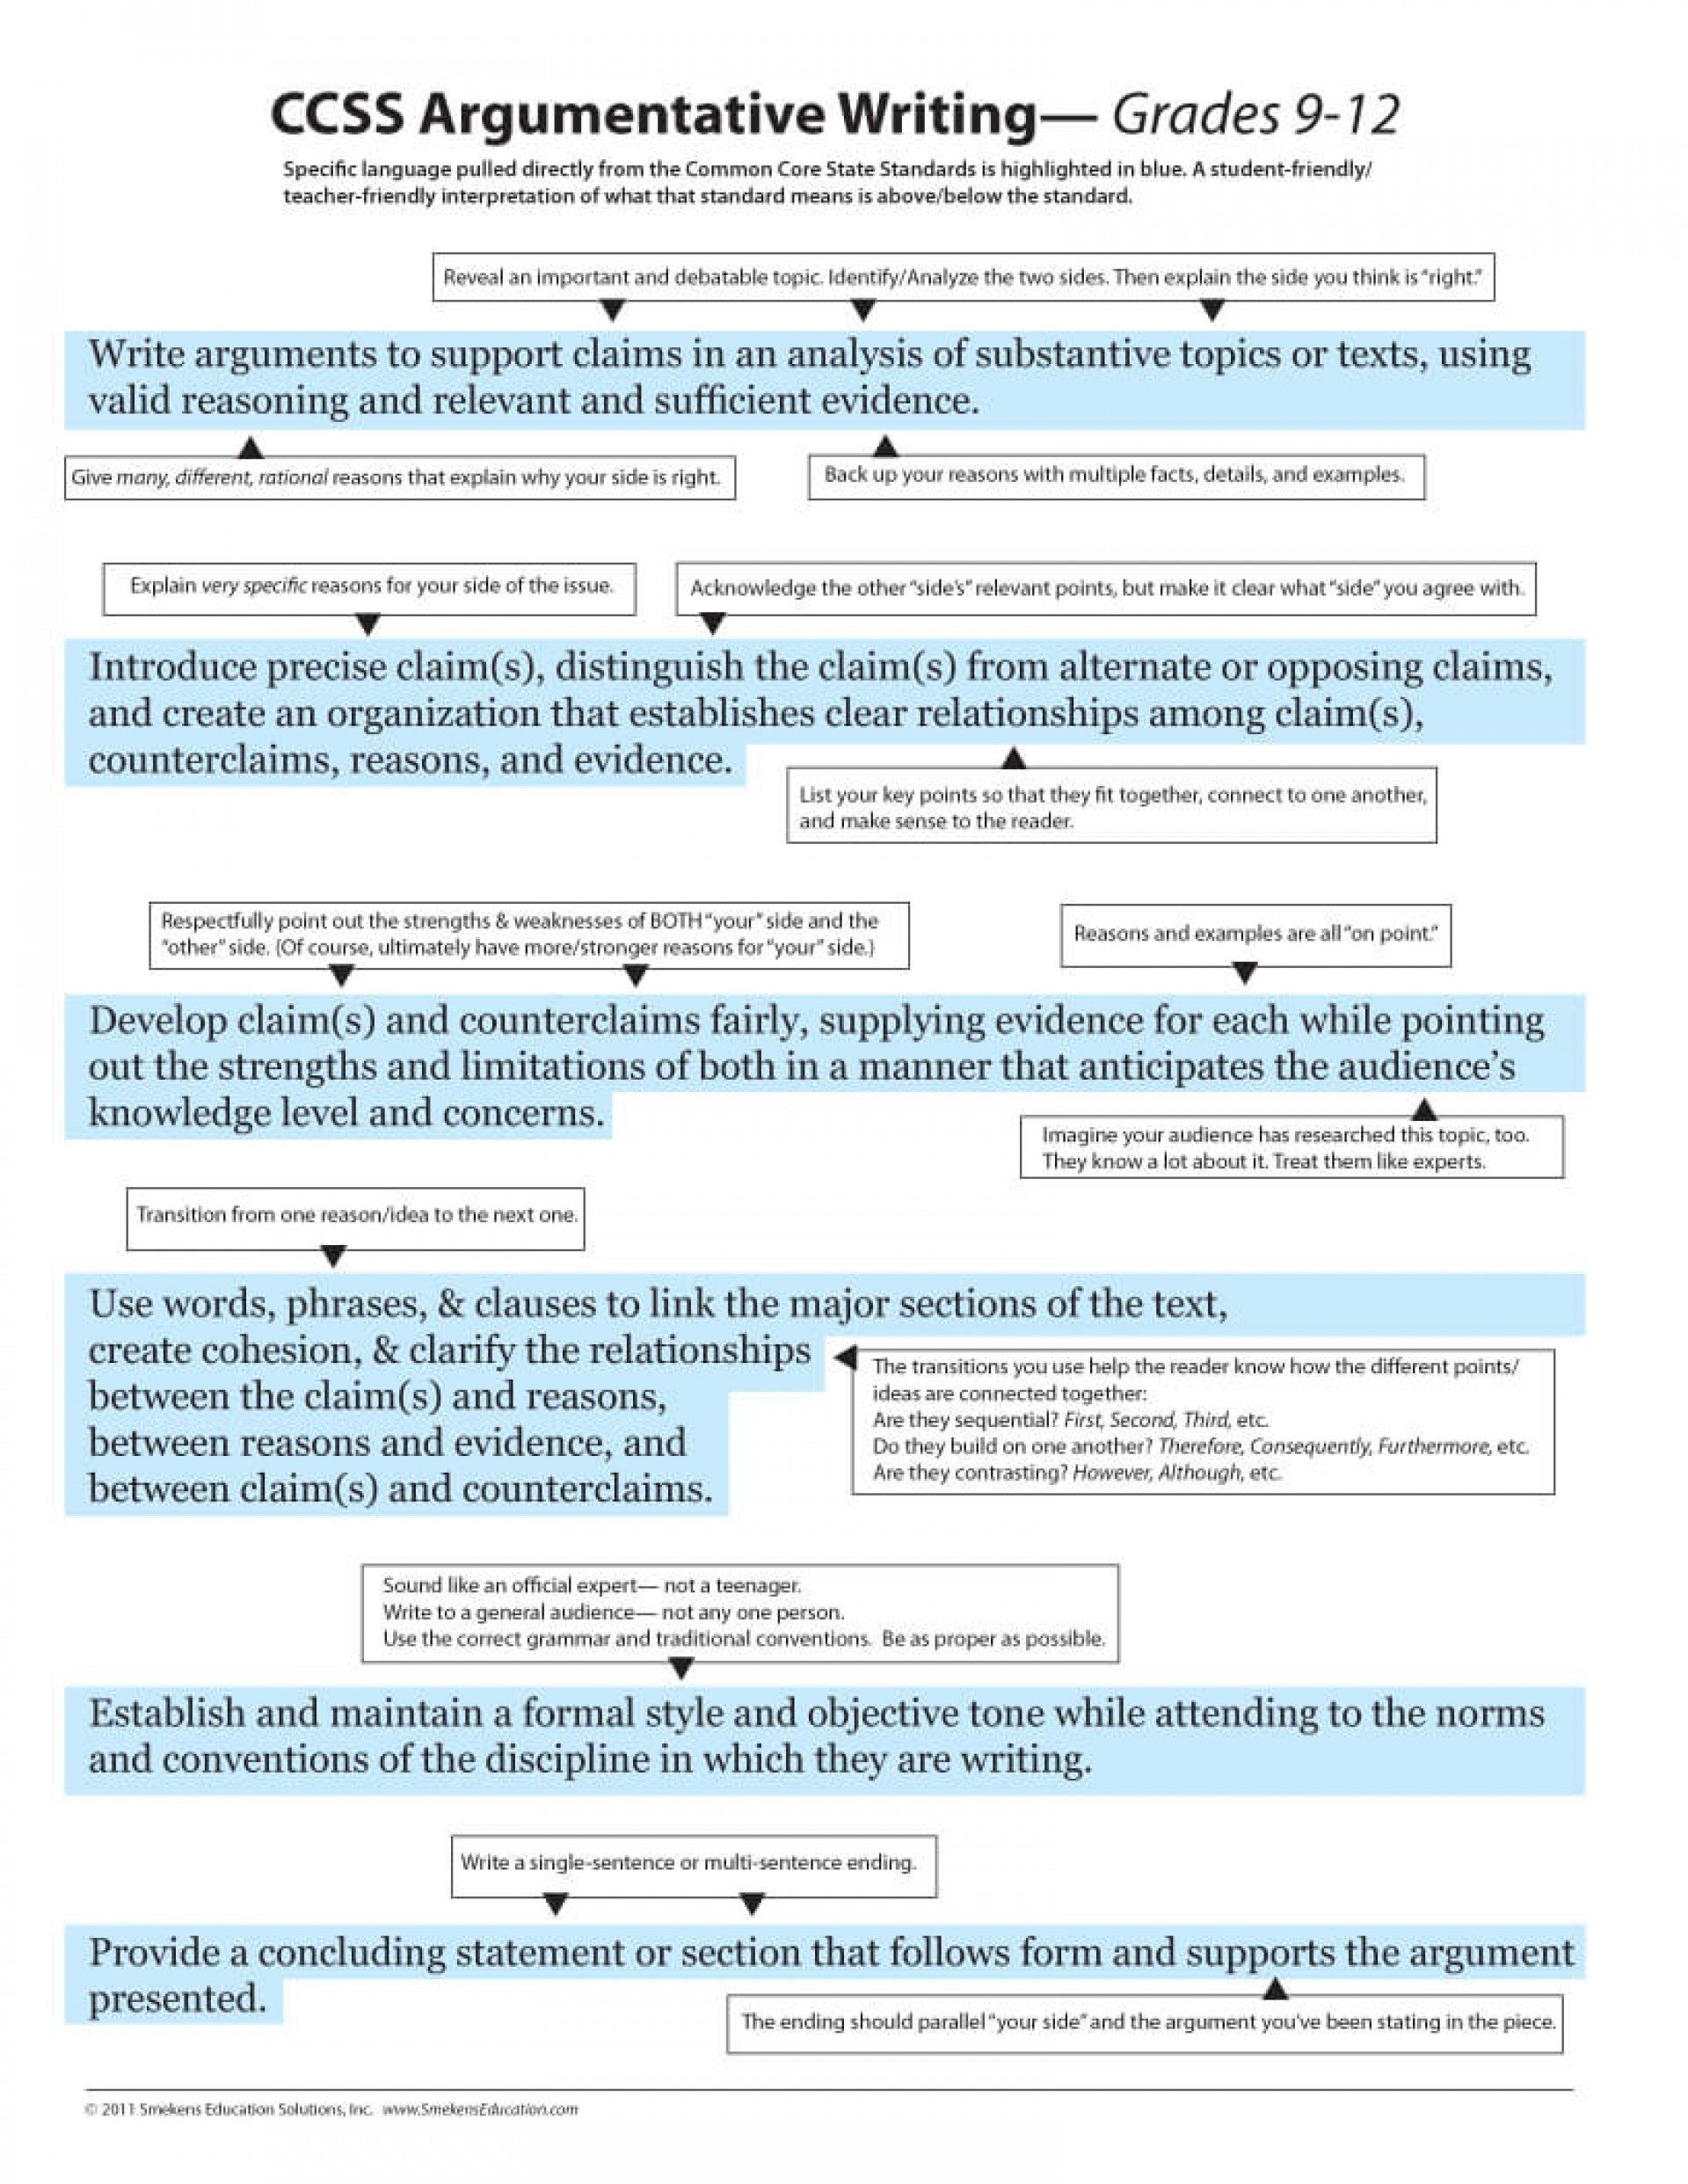 002 Essay Example The Proper Style For An Argumentative Is Ccss Grade 9 Stunning Academic. Friendly. Informal. Personal Formal Casual Informal Quizlet 1920